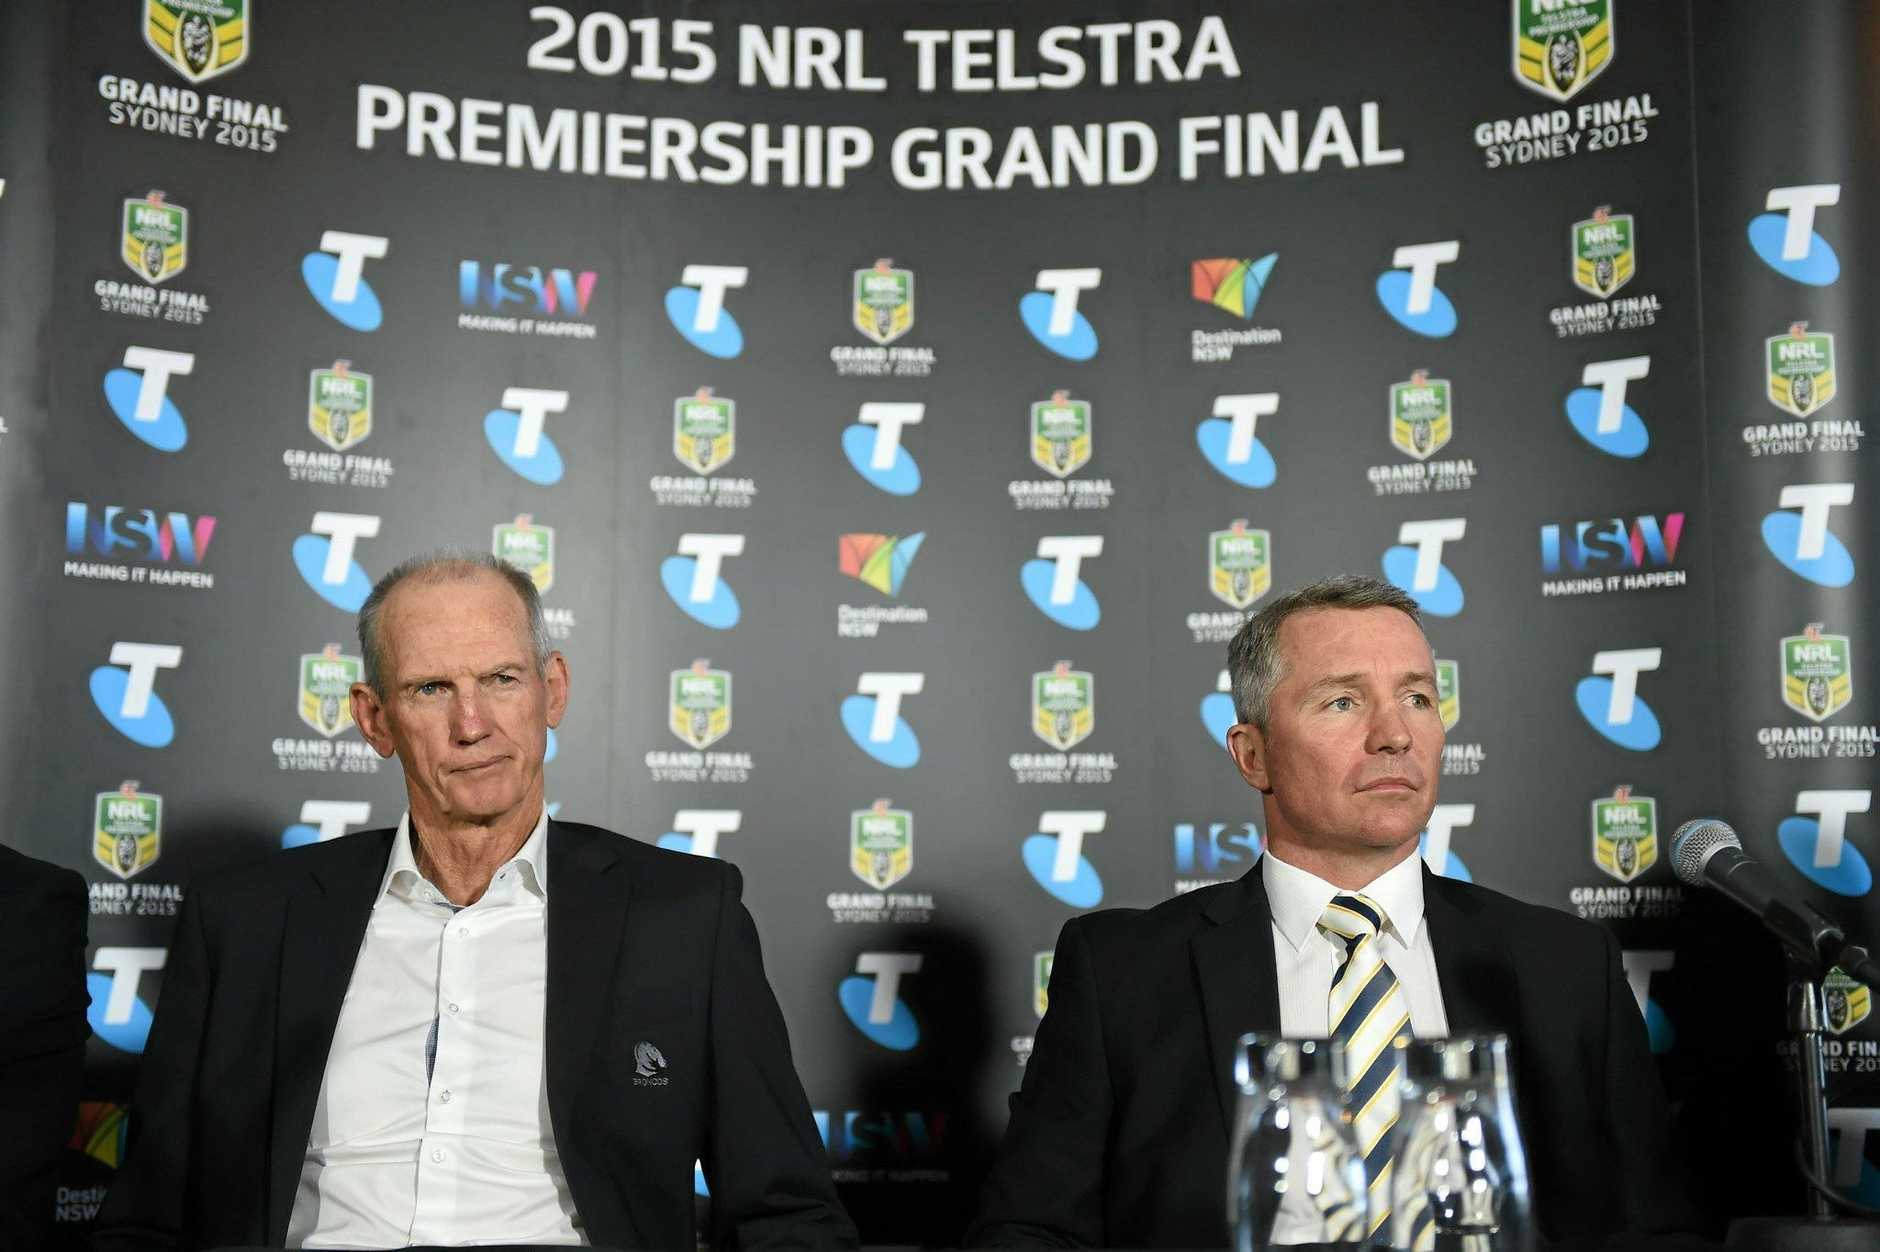 Brisbane Broncos coach Wayne Bennett and North Queensland Cowboys coach Paul Green during the 2015 NRL Grand Final press conference in Sydney.